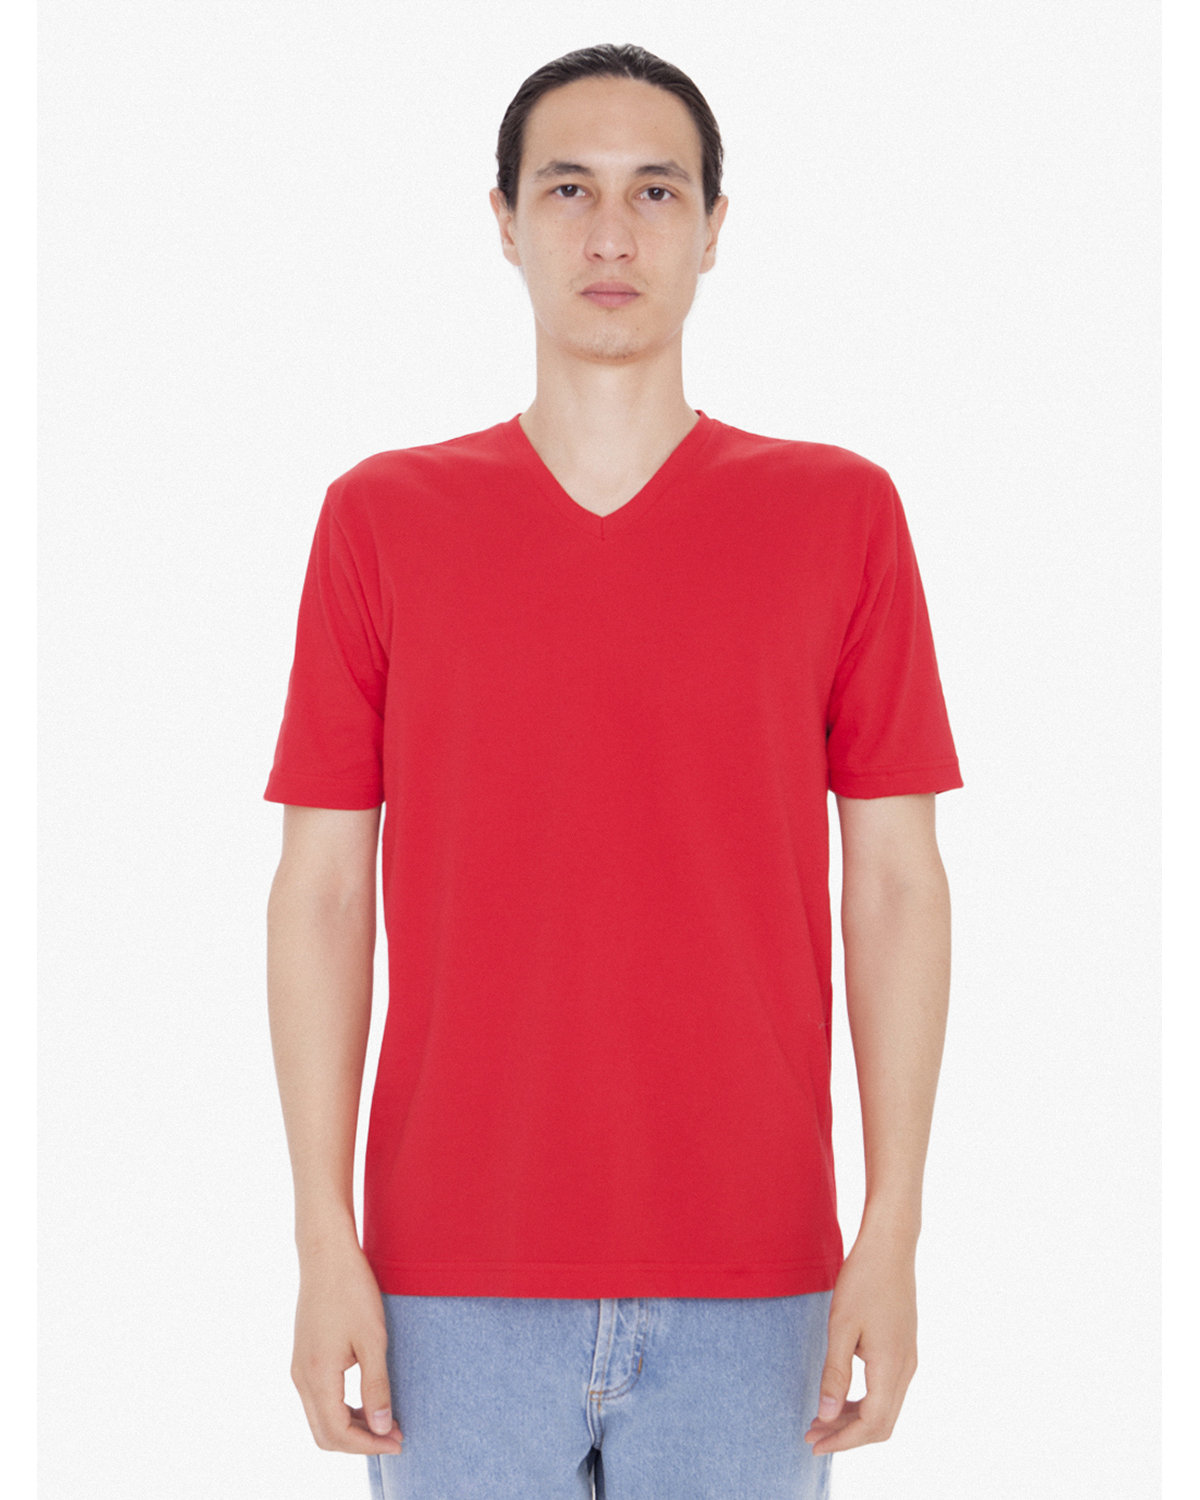 American Apparel Unisex FINE JERSEY SHORT SLEEVE CLASSIC V-NECK RED